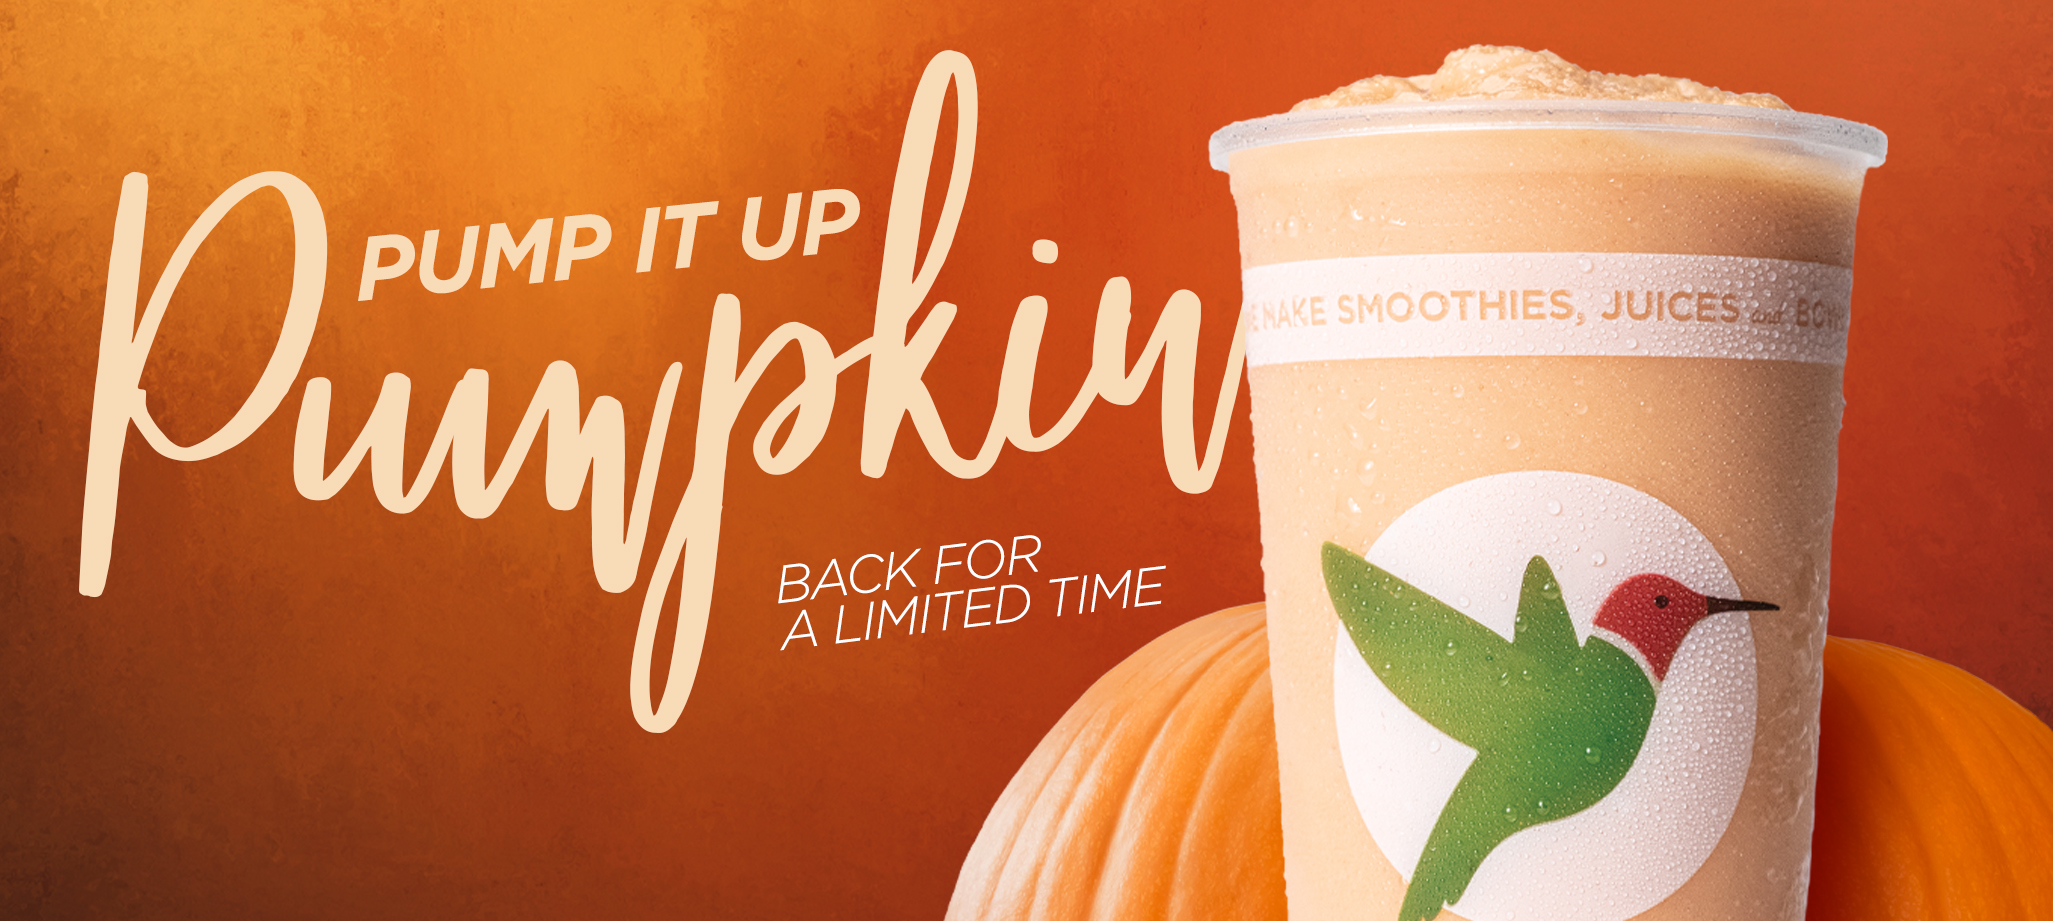 Pump It Up Pumpkin Smoothie